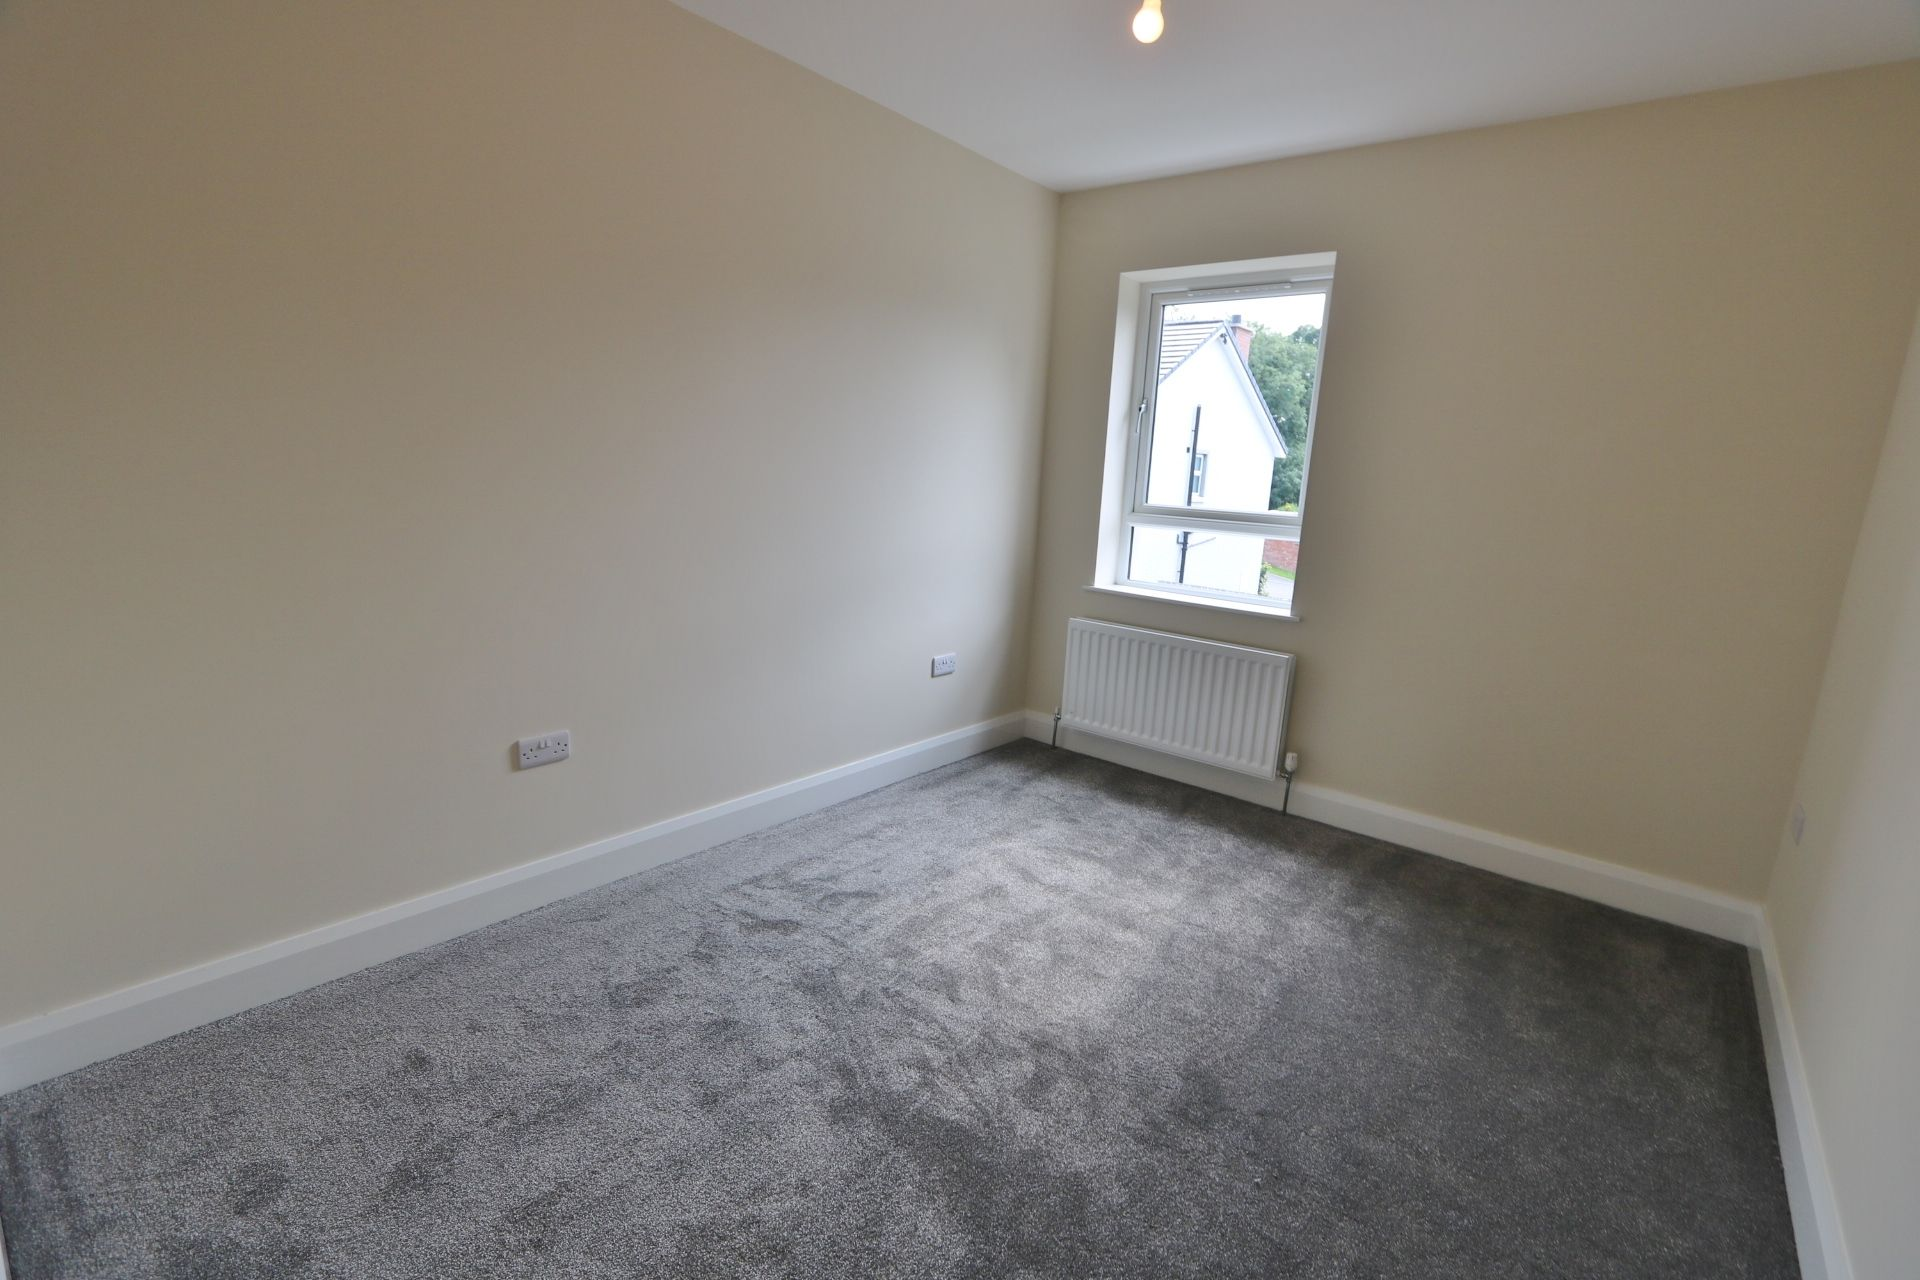 3 bedroom detached house For Sale in Milltown - Photograph 15